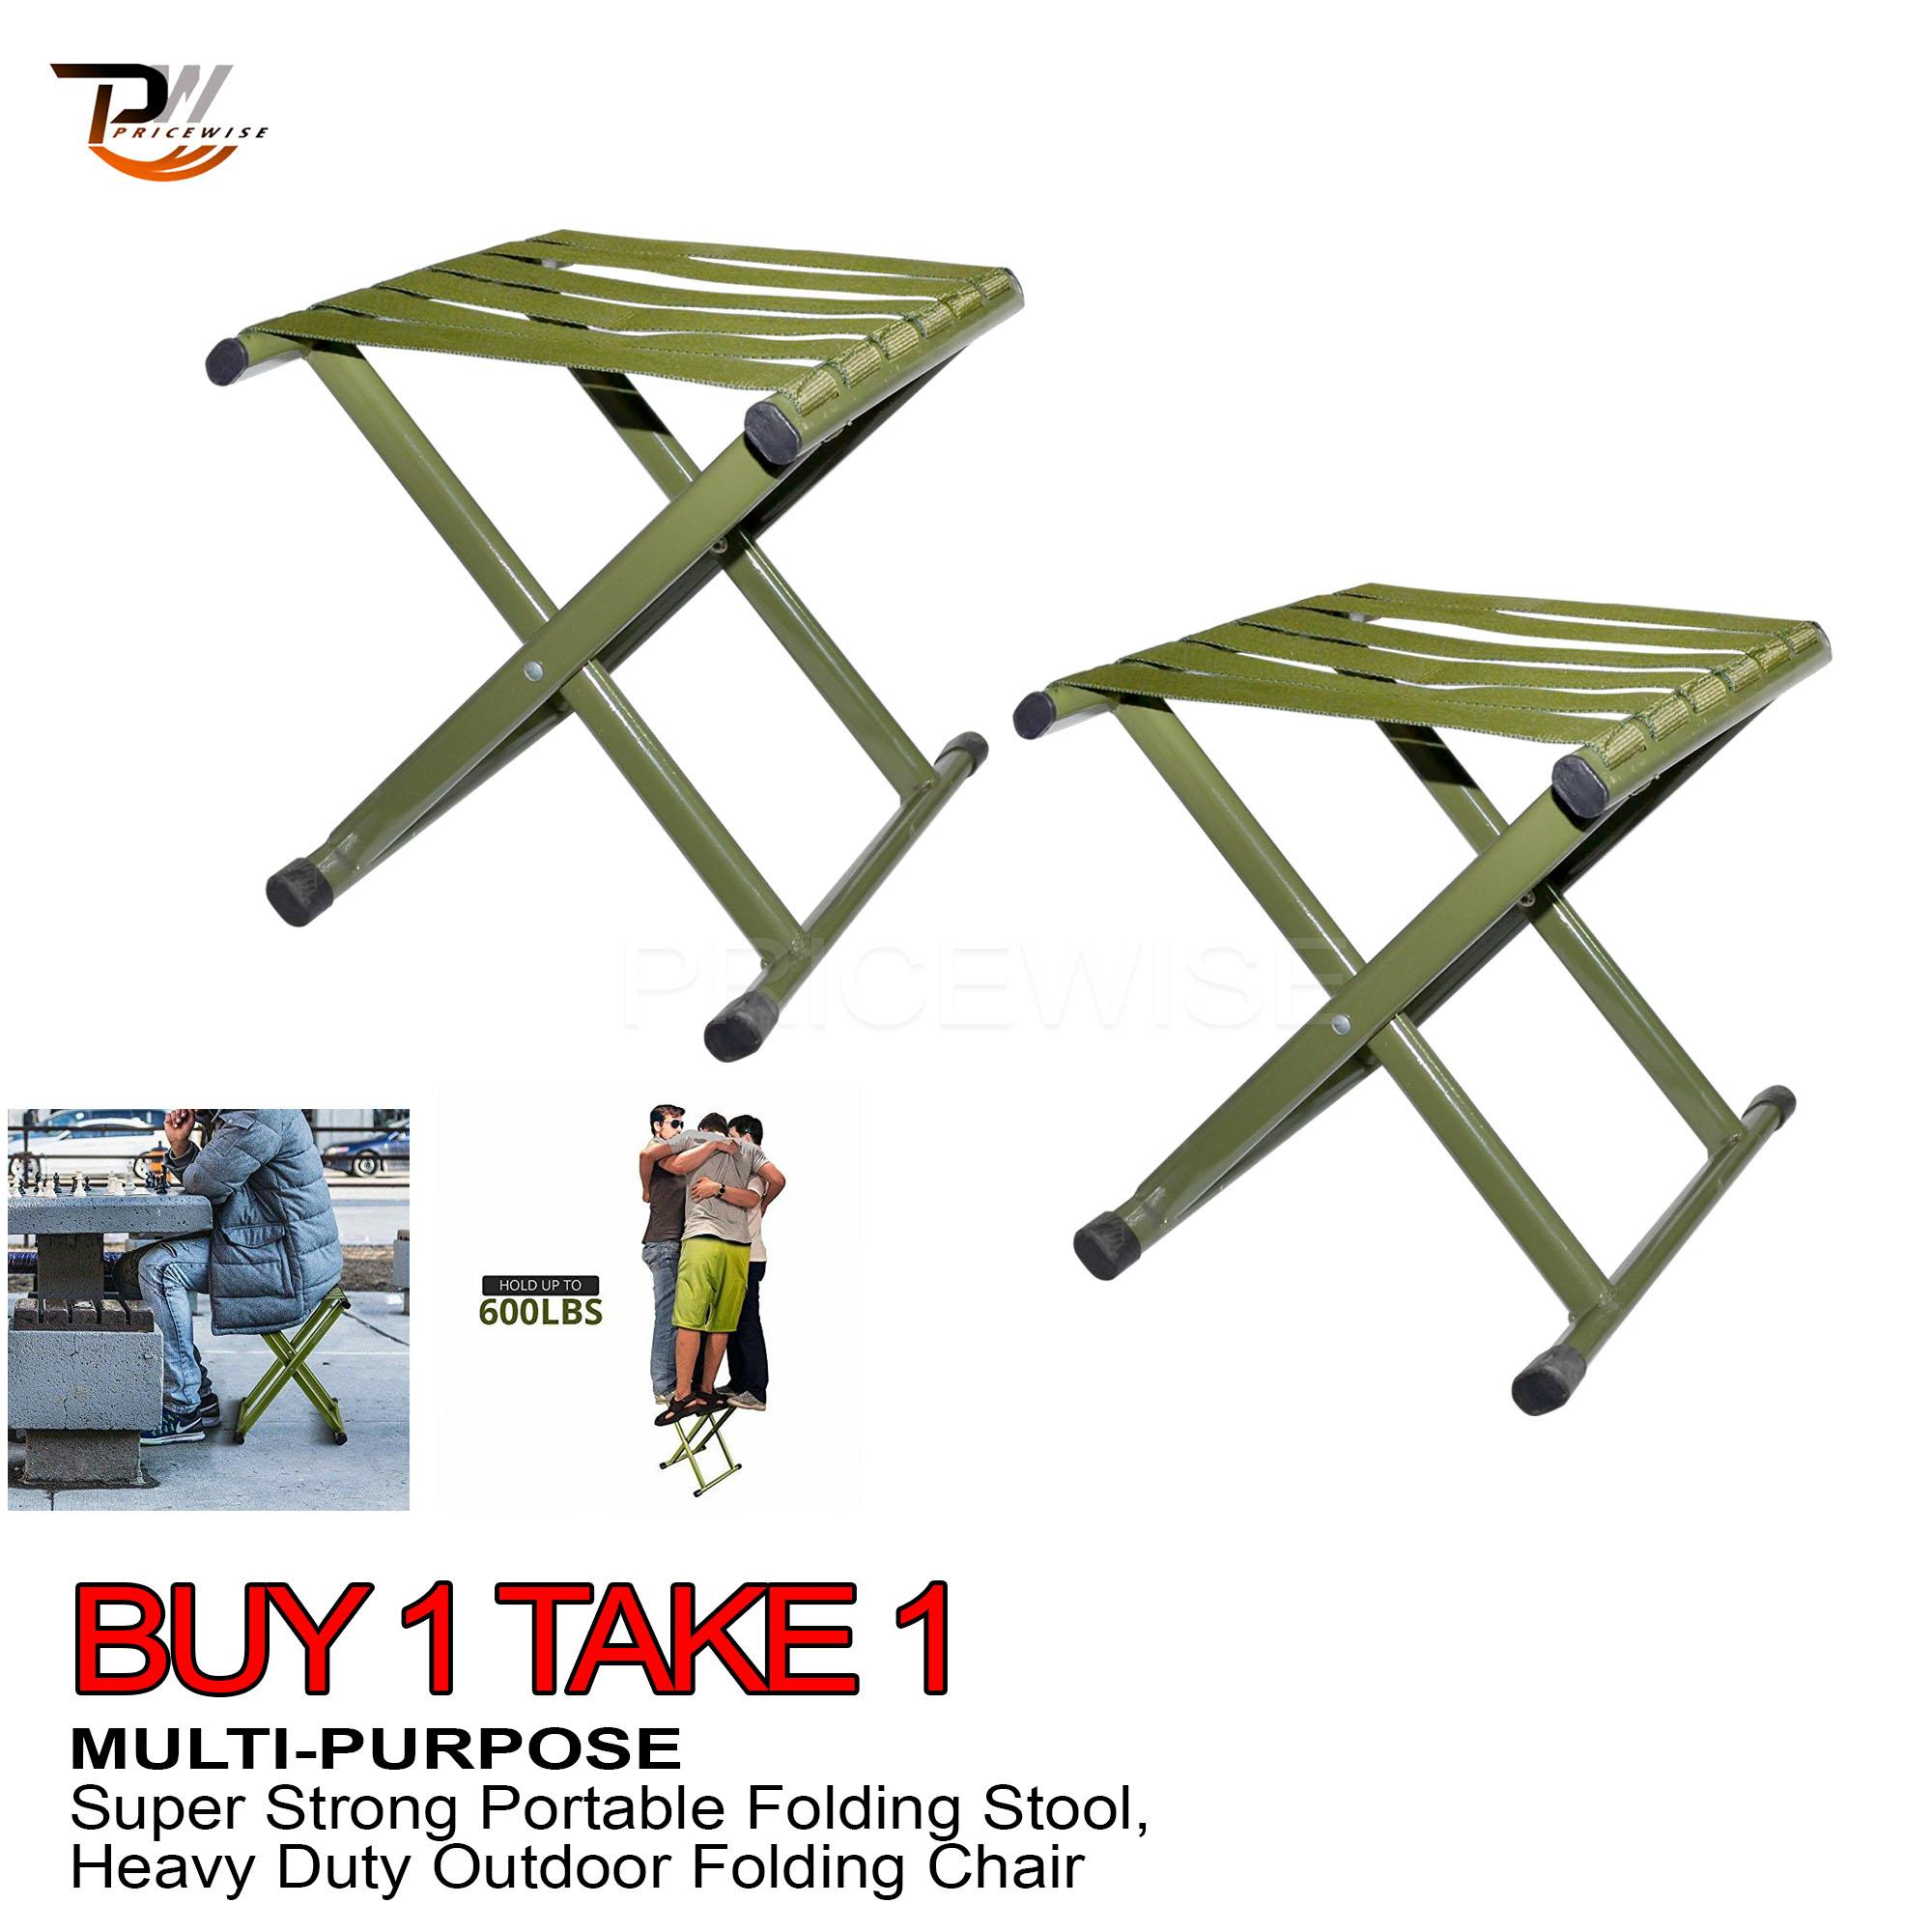 BUY 1 TAKE 1 - New Portable Heavy Duty Outdoor Collapsible Chair Hold Up To  600 LBS